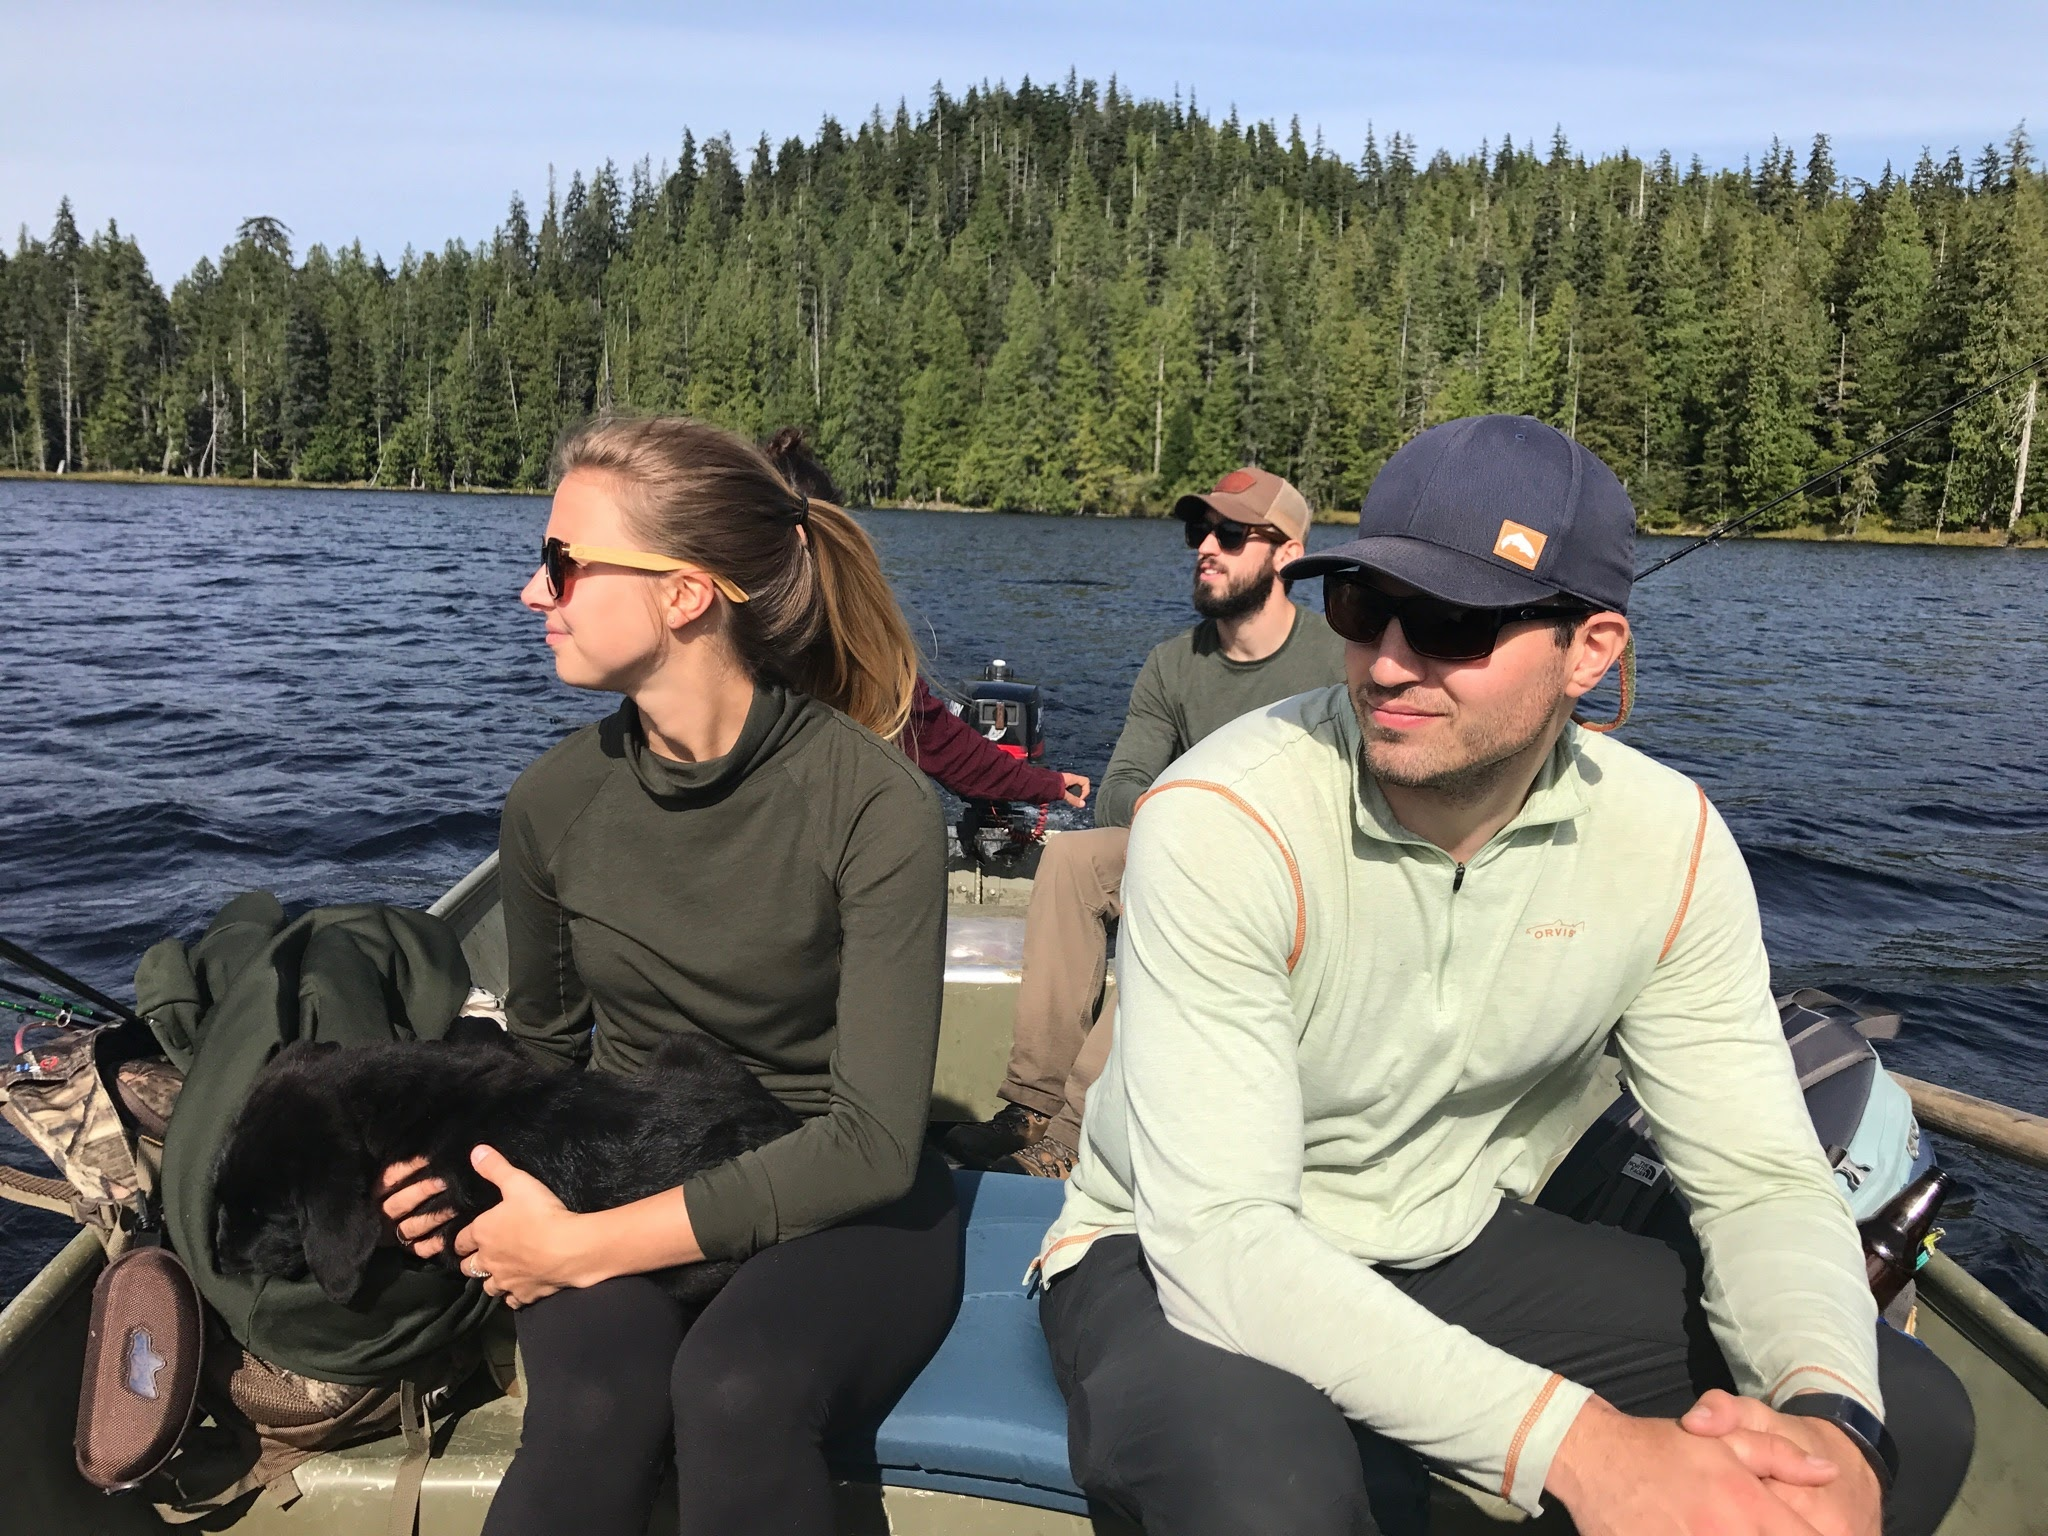 - Sunglasses for Life.Owners of Greater Lakes sunglasses receive a discount on all future purchases for life!